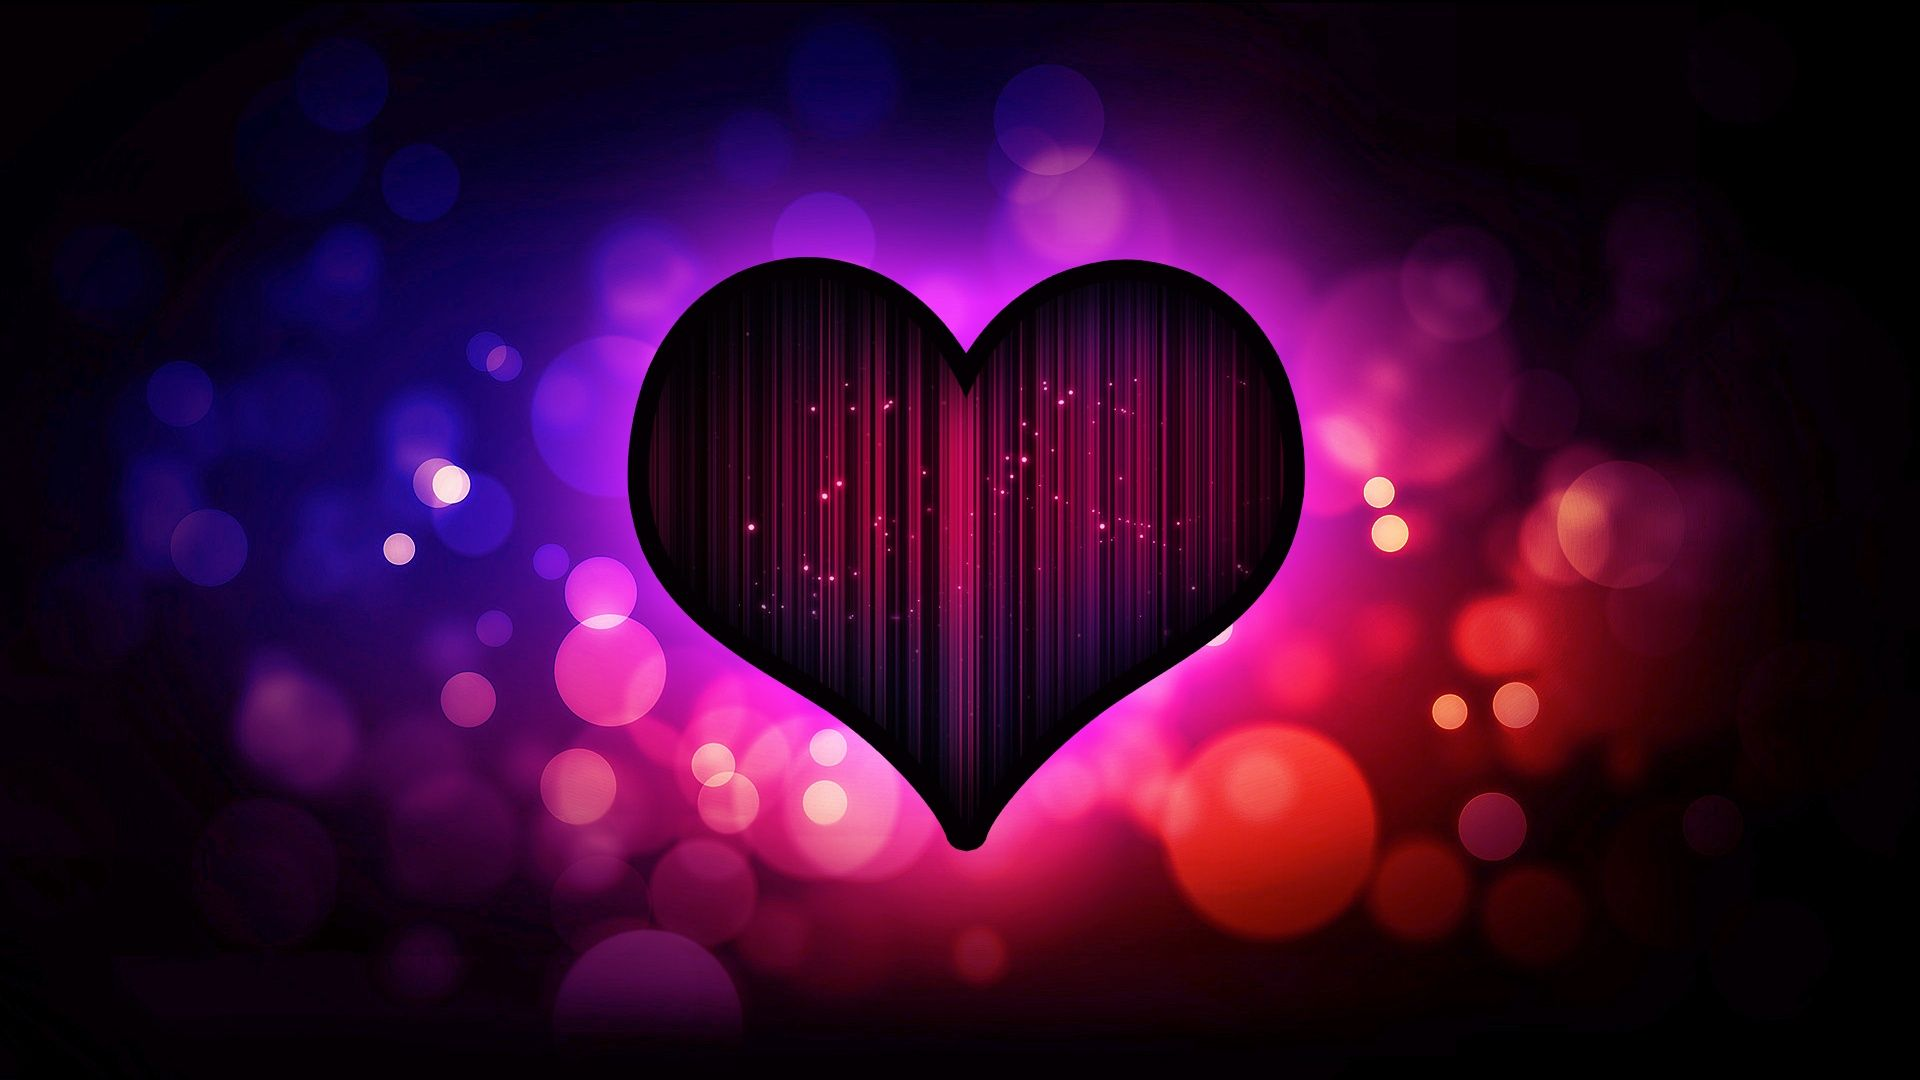 Love Wallpapers Full Hd : Hd Wallpaper Of Love Heart